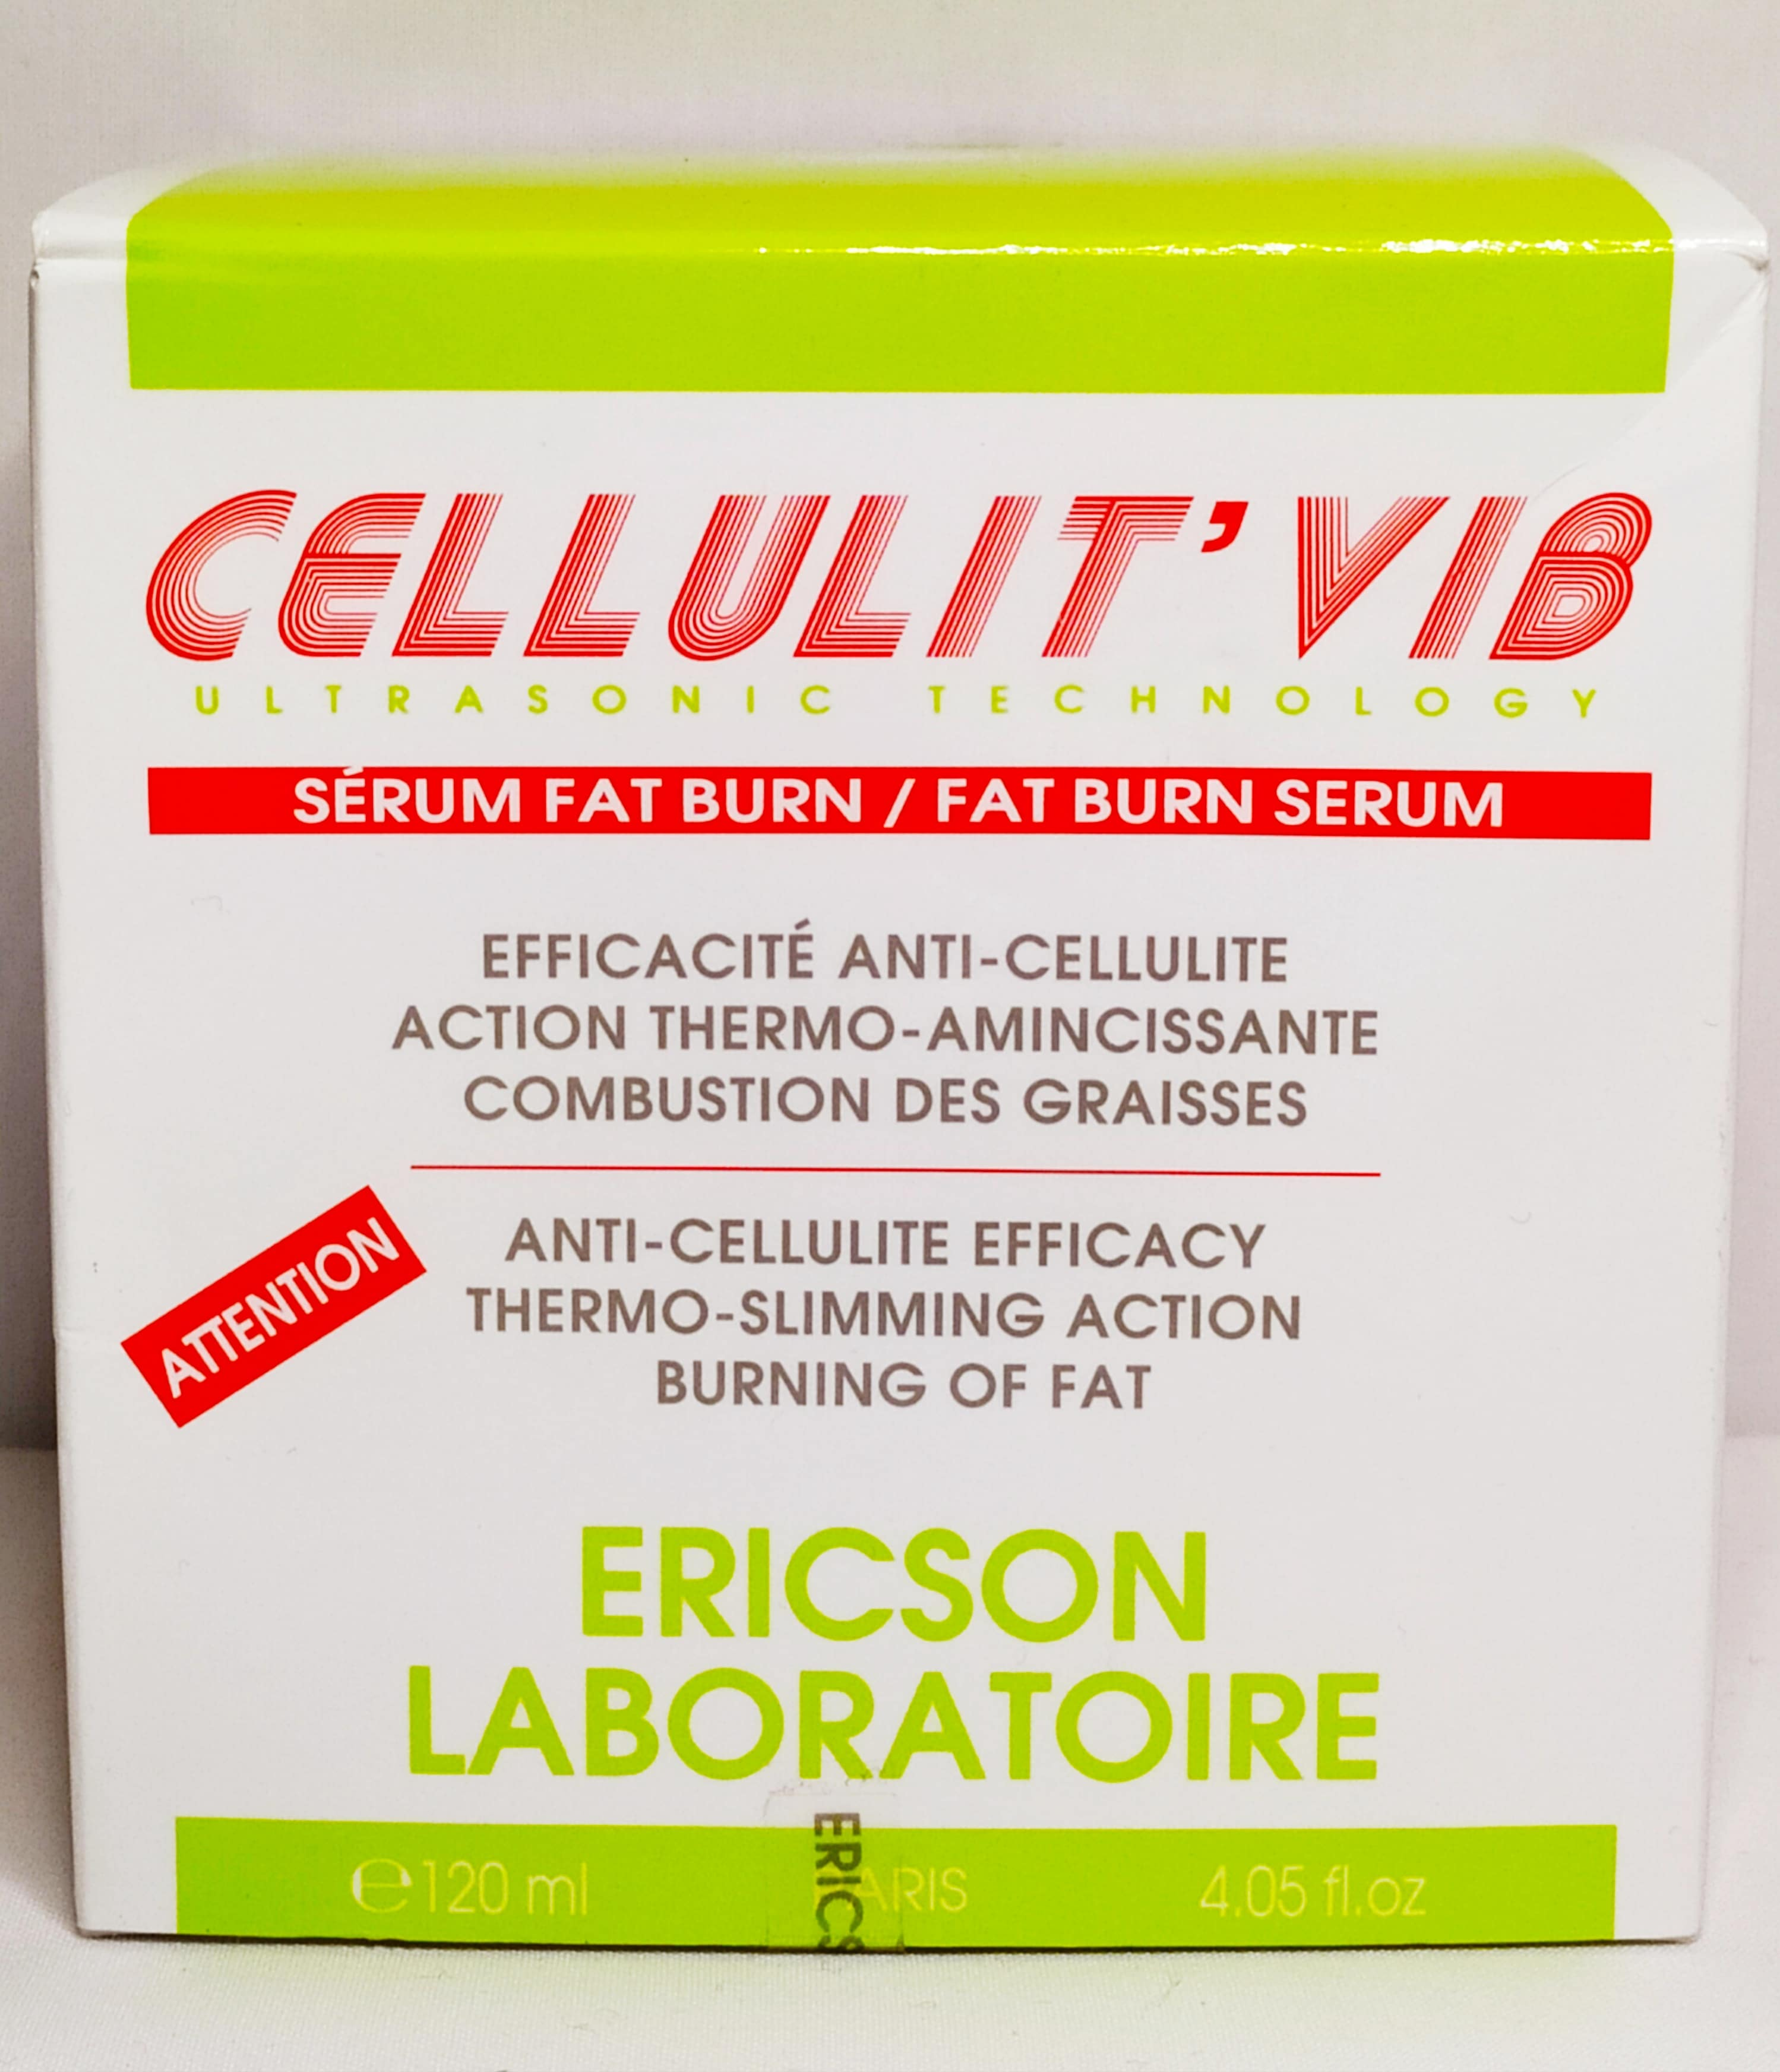 CELLULIT' VIB - SERUM FAT BURN